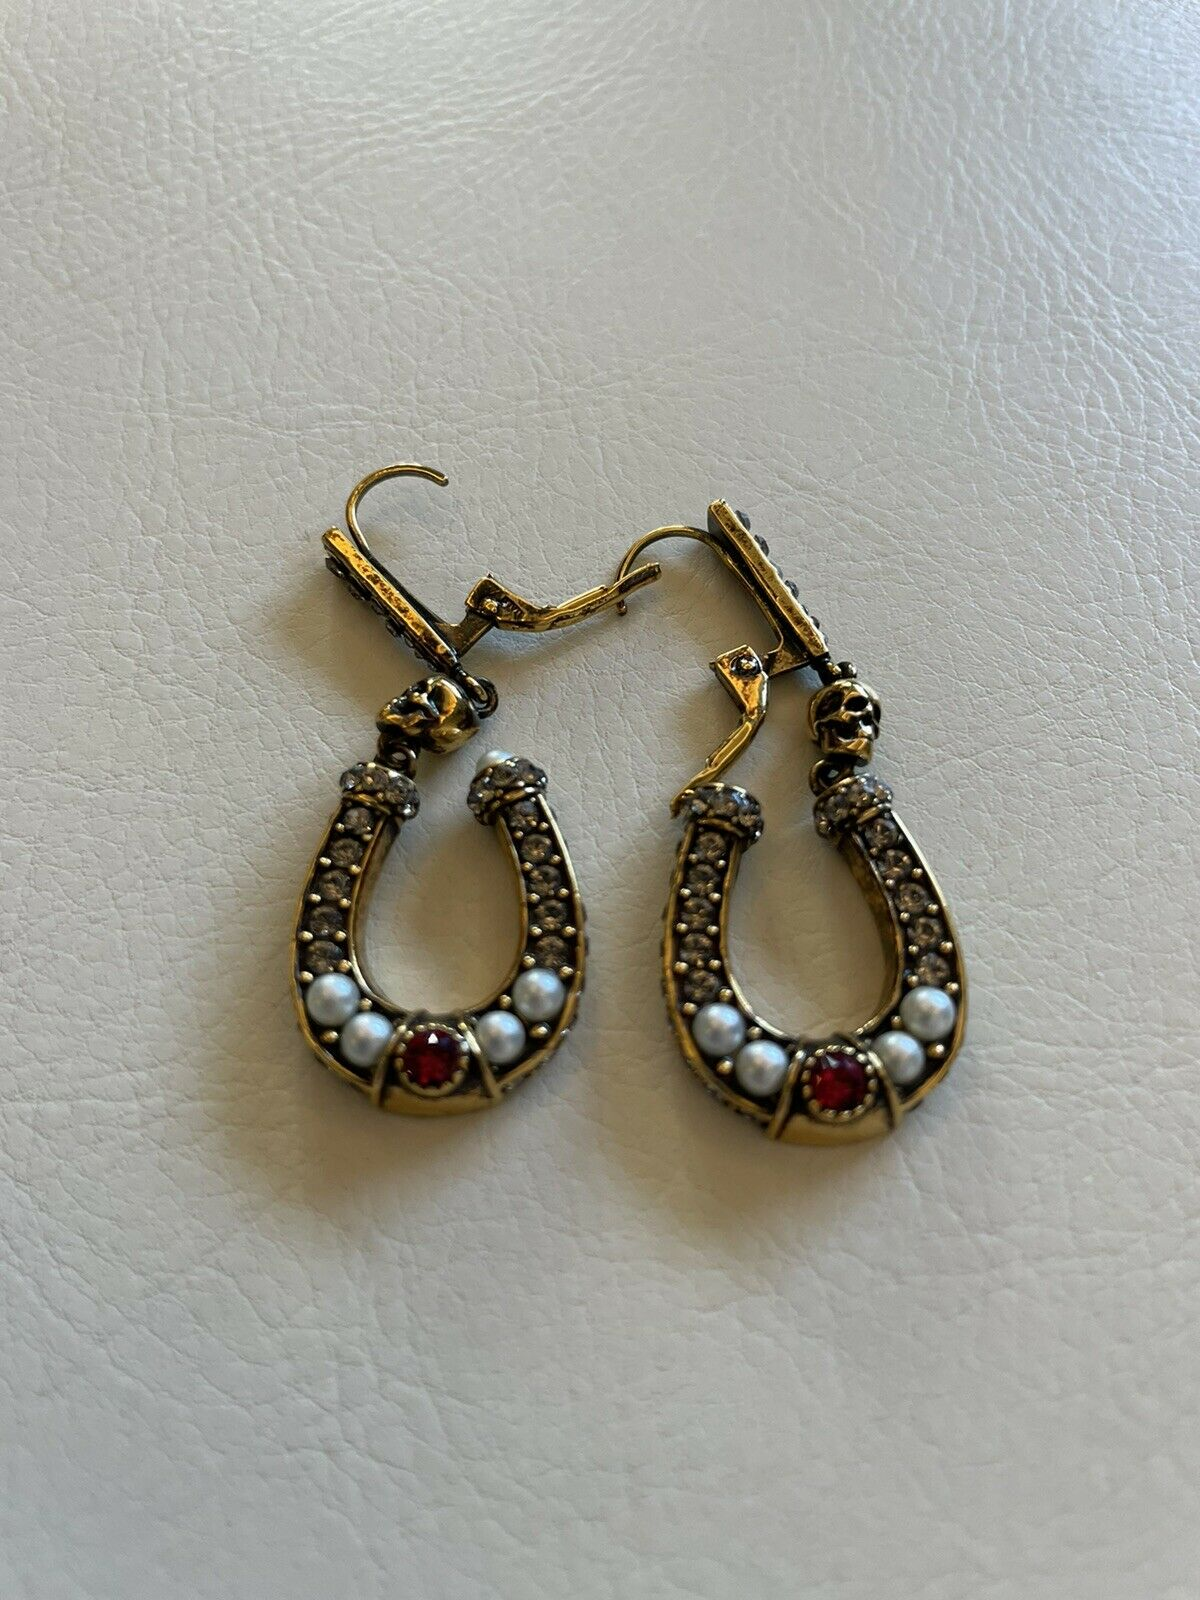 Alexander Mcqueen Horseshoe Earings, Didnt Wear Them, Great Condition